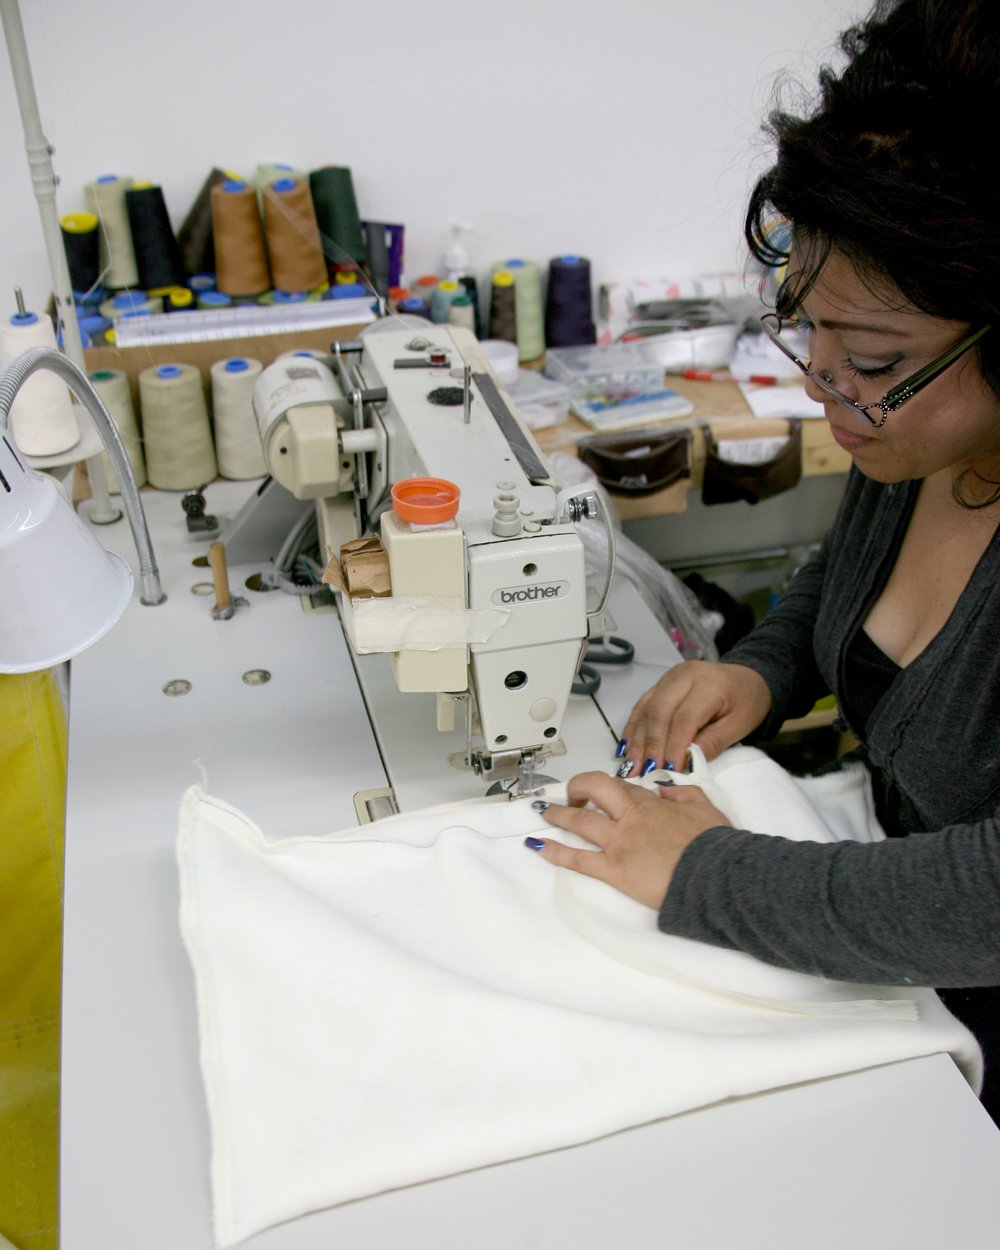 Seamstress expertly inserting an invisible zipper.